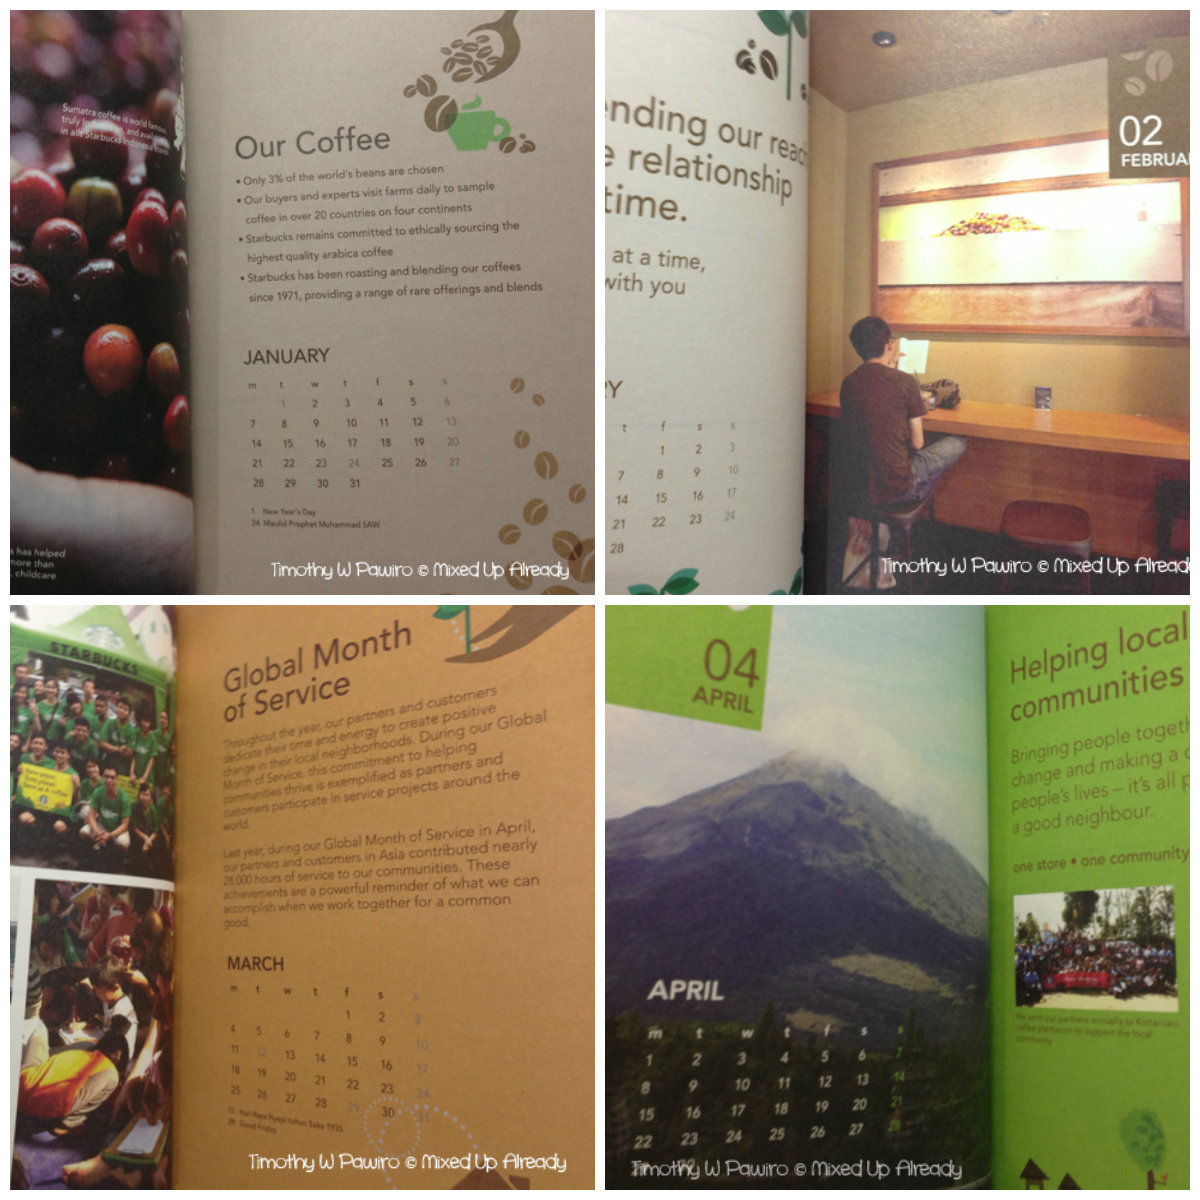 Starbucks Indonesia Planner 2013 (Jan - Apr)